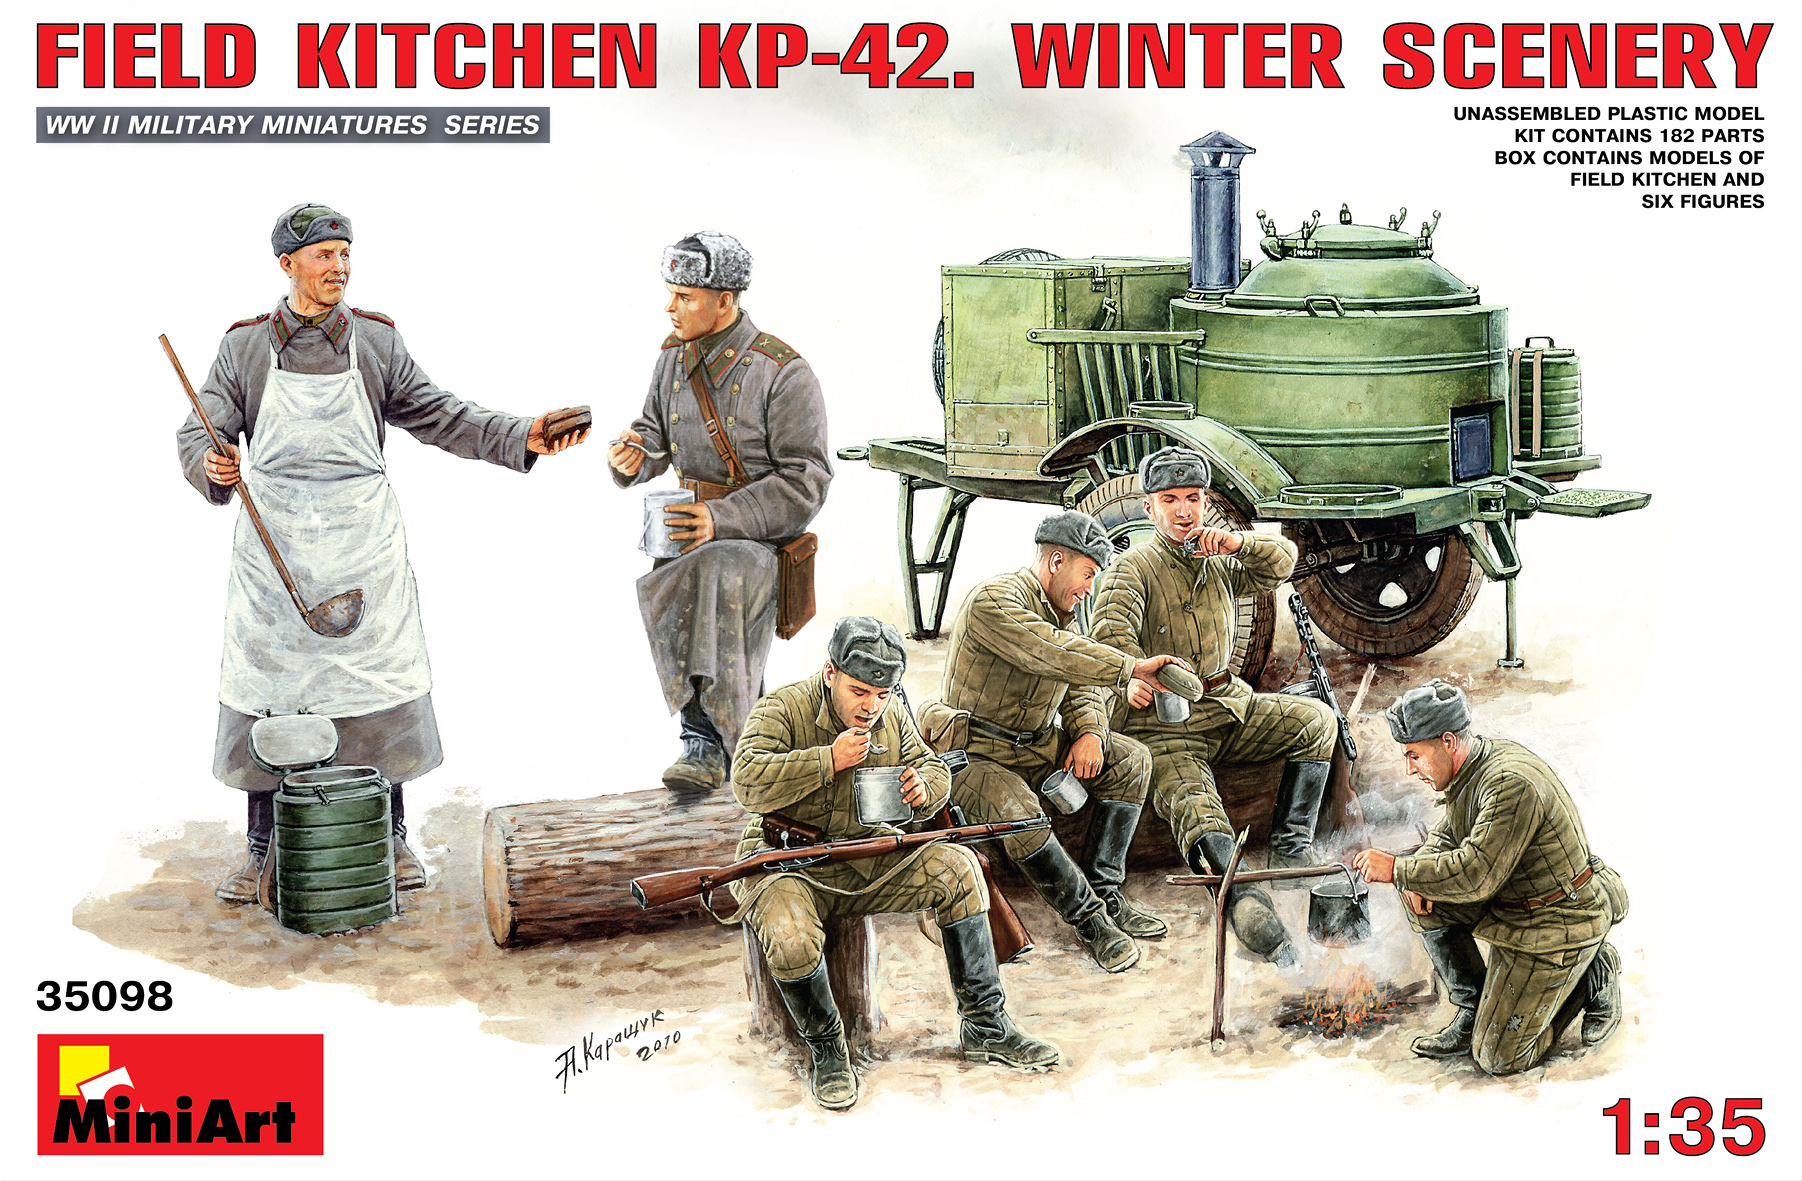 35098 FIELD KITCHEN KP-42. WINTER SCENERY